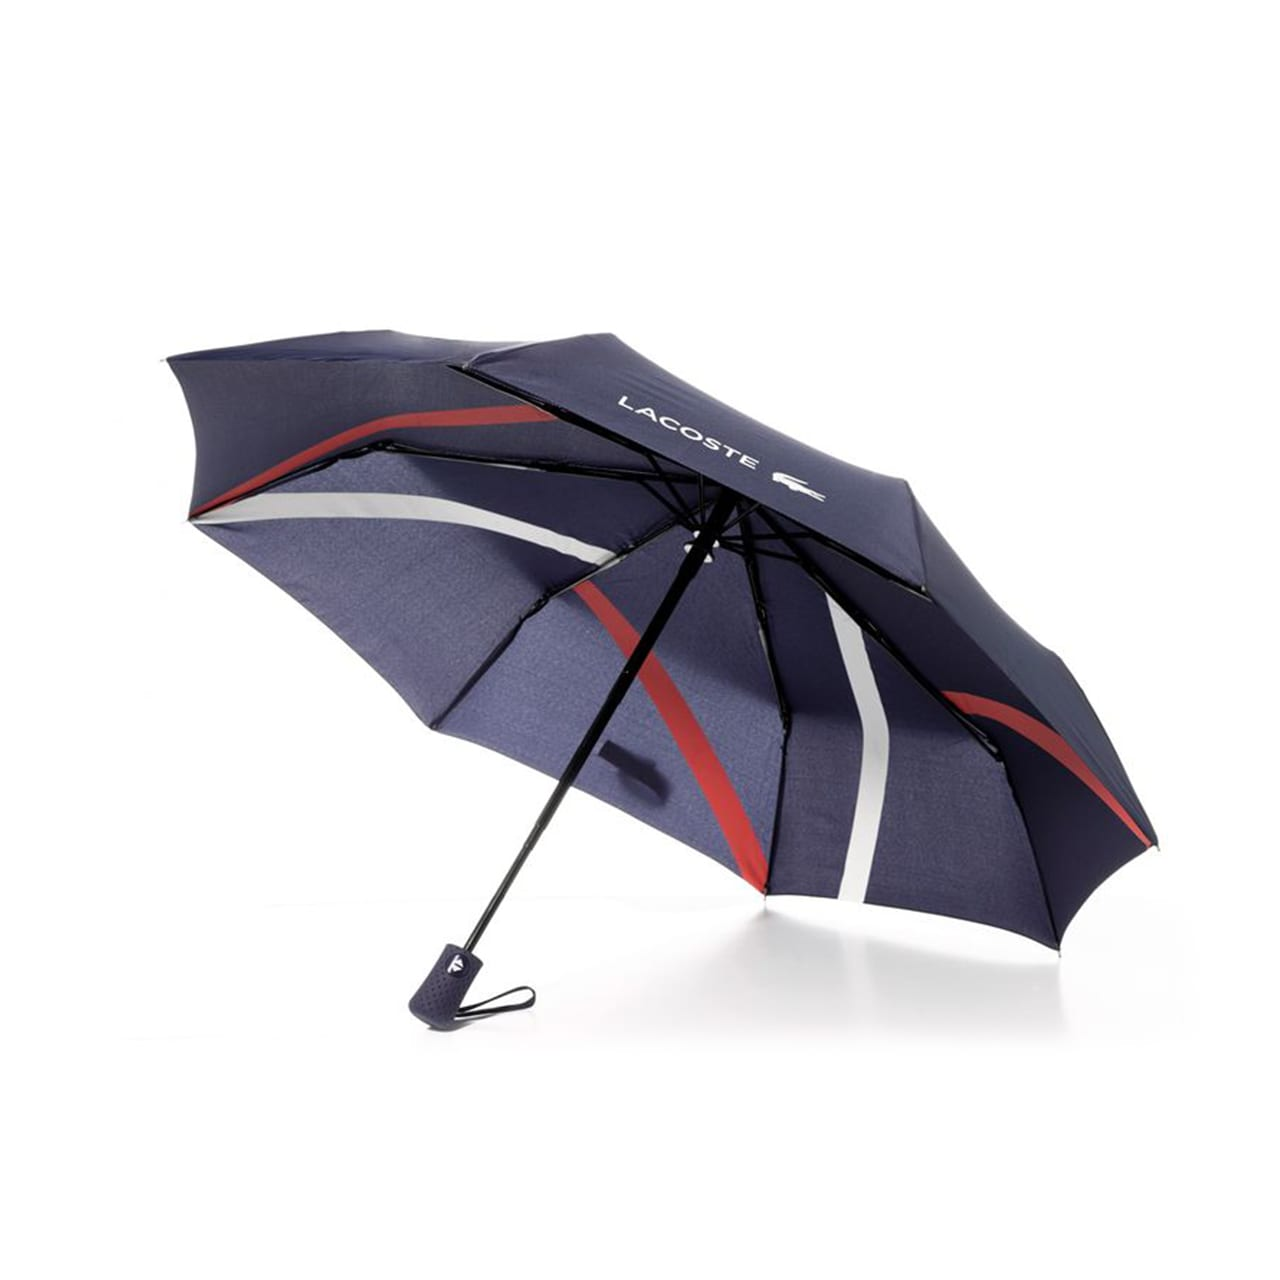 Exclusive Lacoste Umbrella